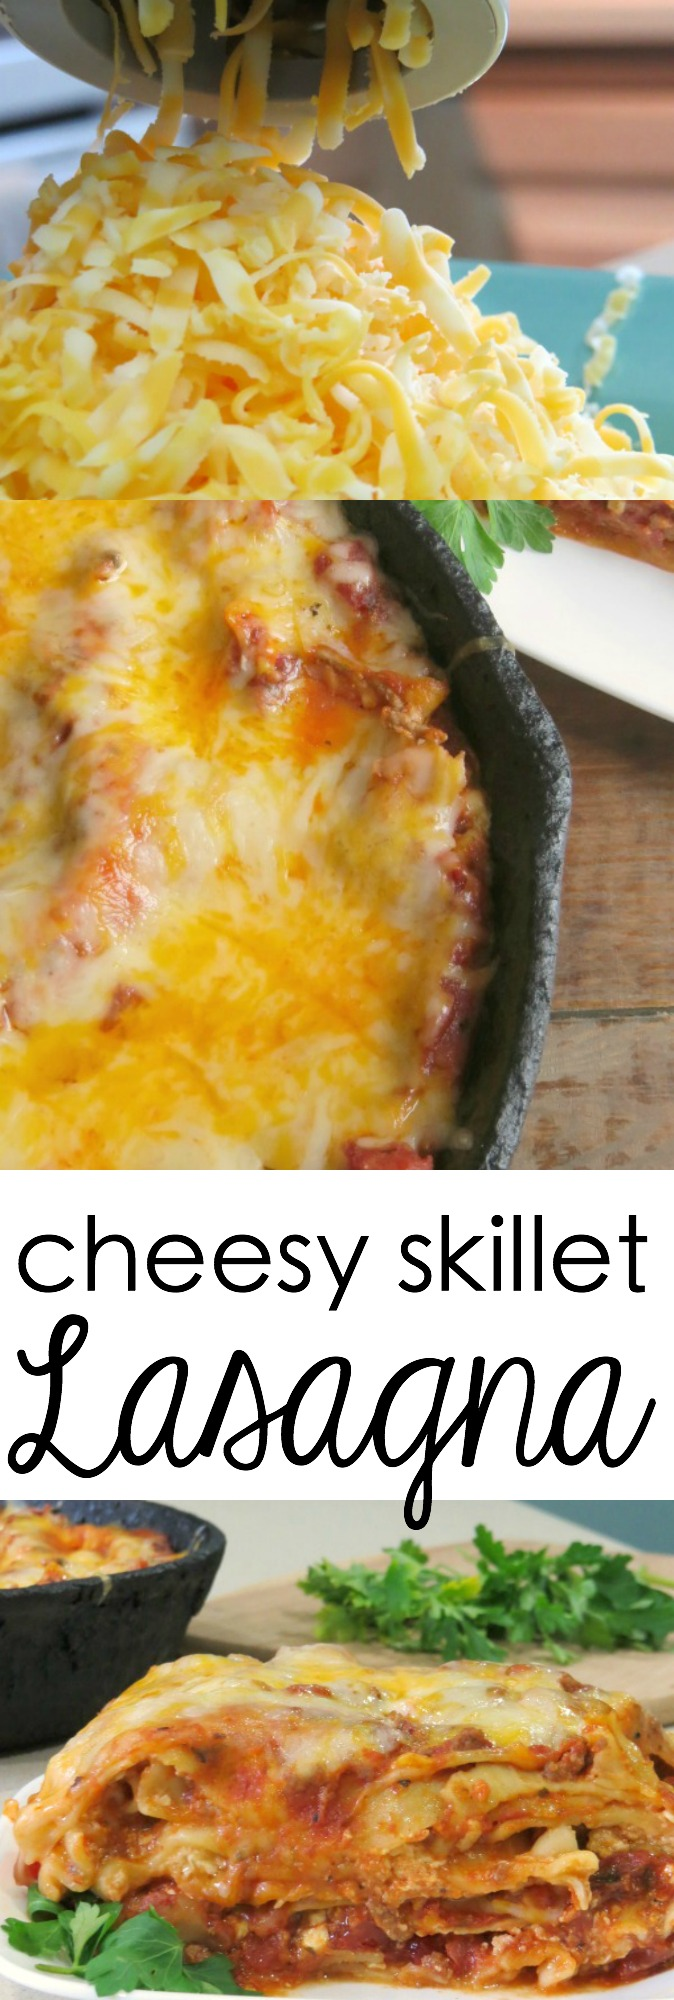 best skillet lasagna recipe